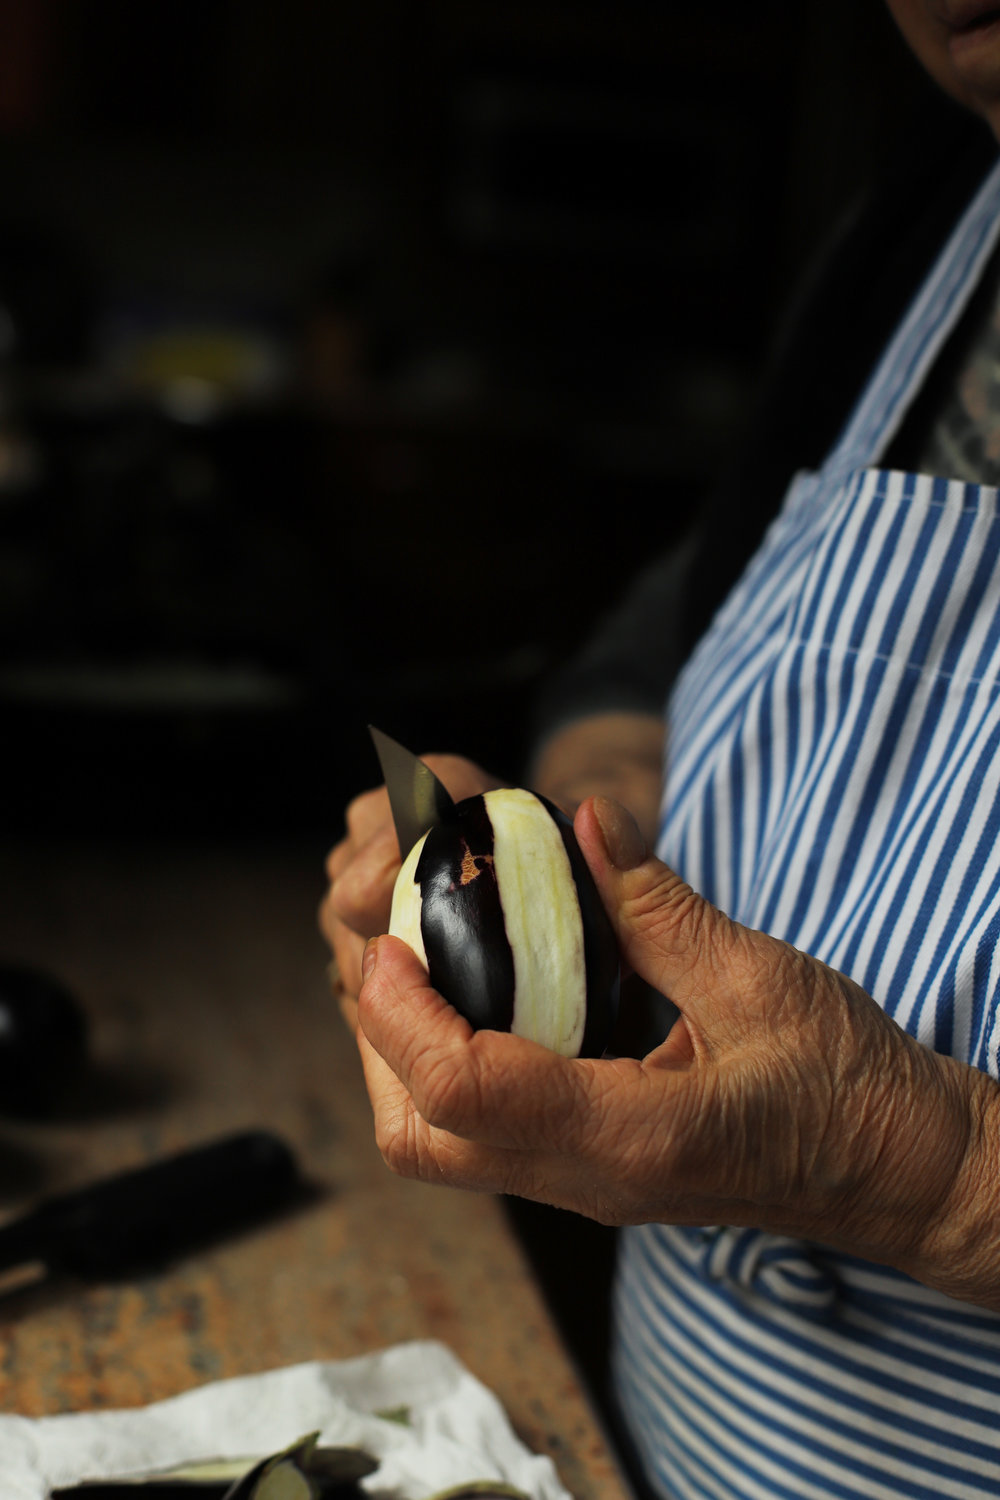 My grandmother stuffing eggplant for sheikh mahshi